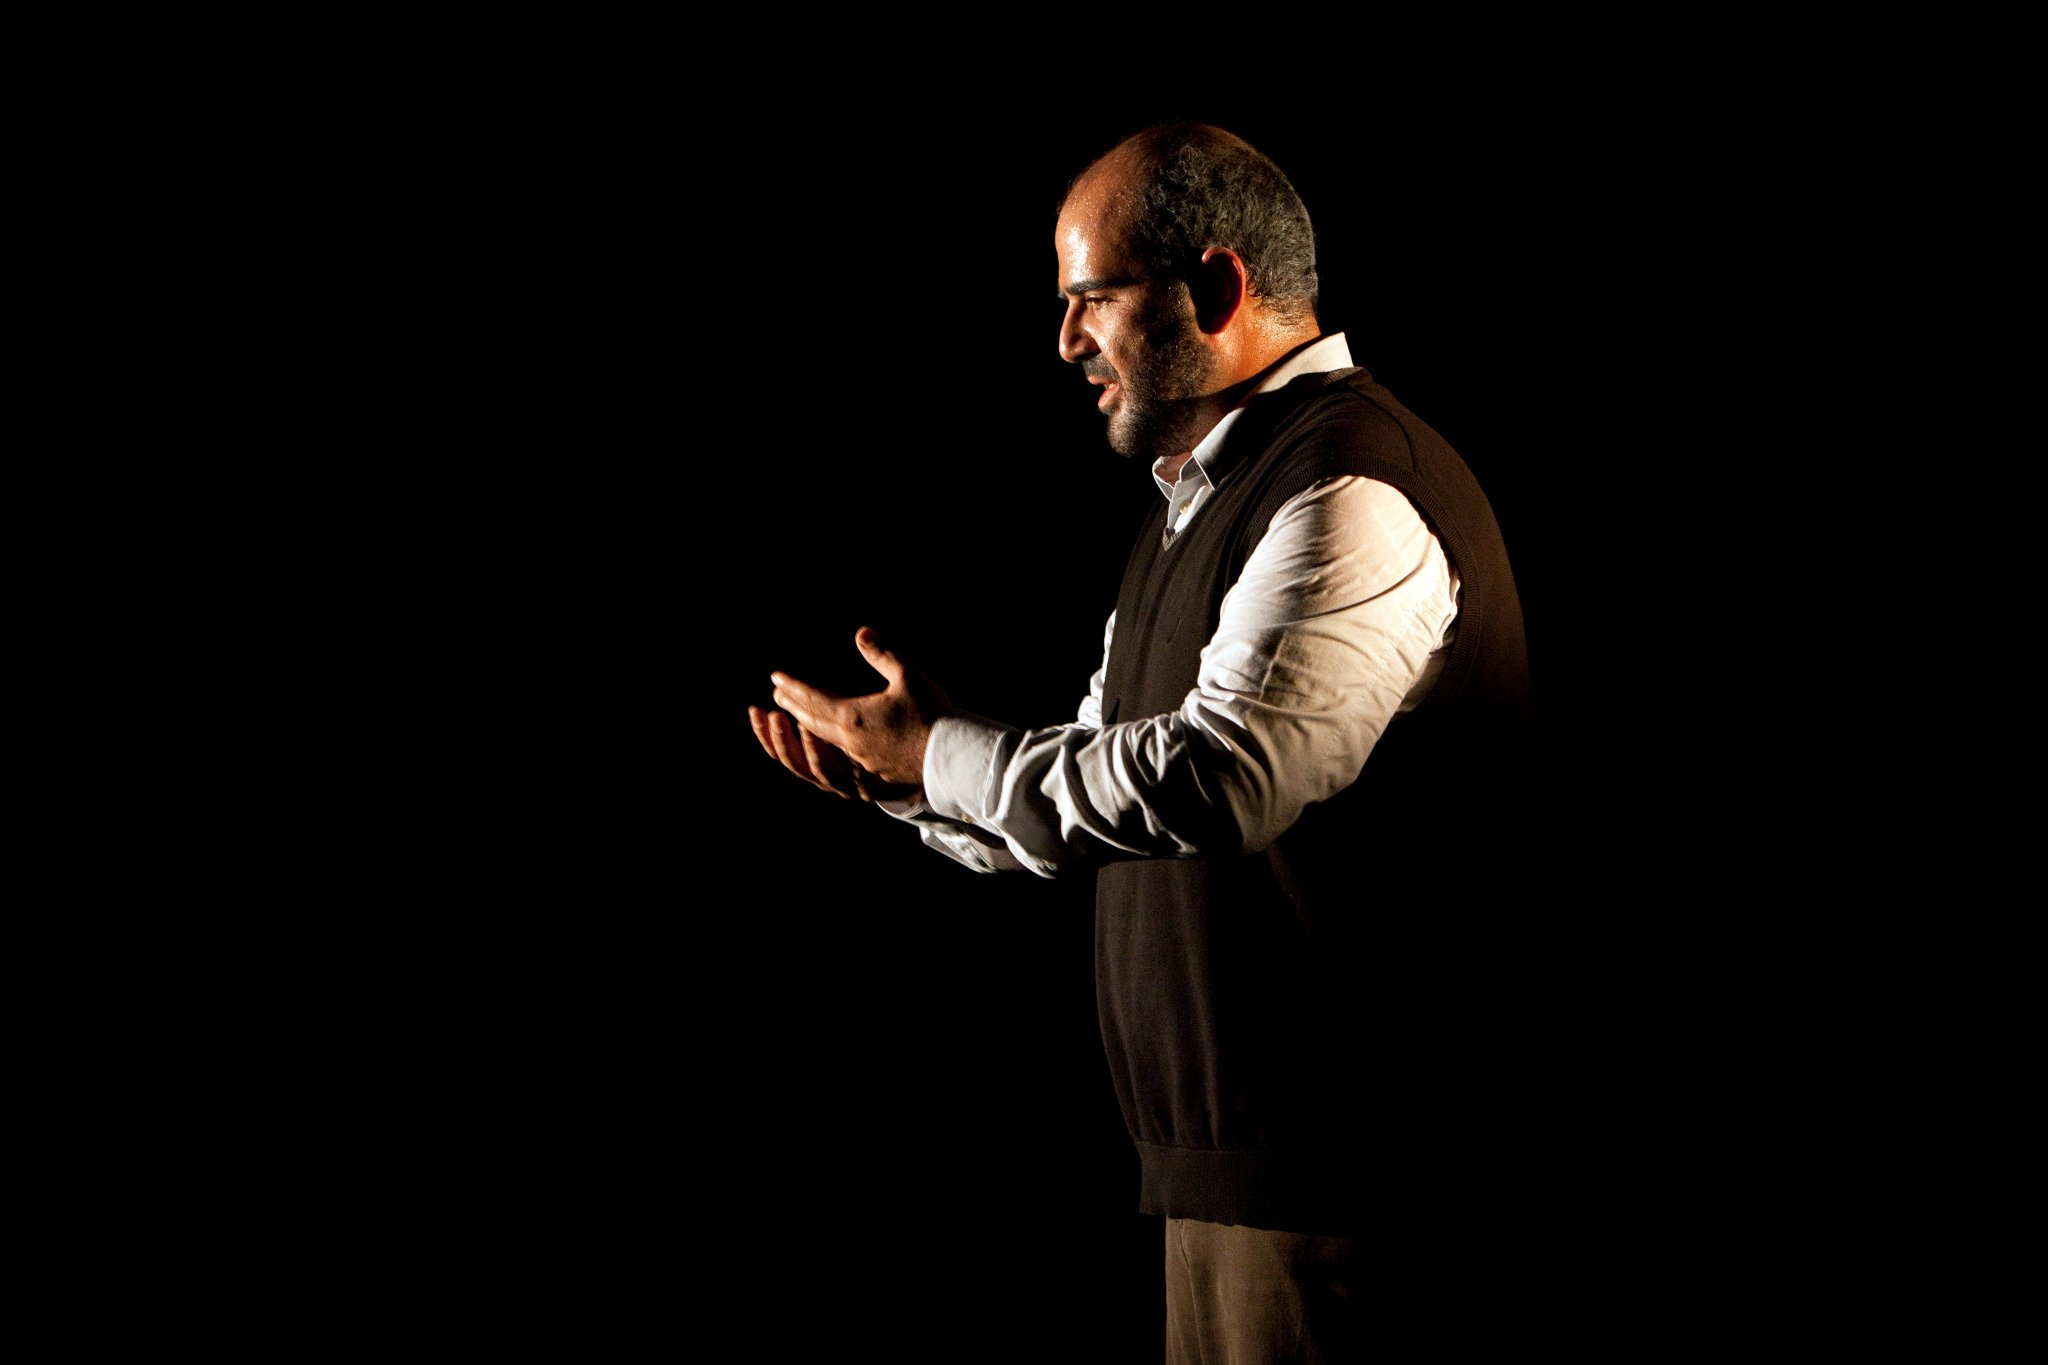 """The reviews are in for #Taha! ★★★★ """"An inspiring piece, delicate, deeply affecting. Warmly recommended"""" @Independent https://t.co/WSTqOHGV3u https://t.co/U0LRDUDQpY"""